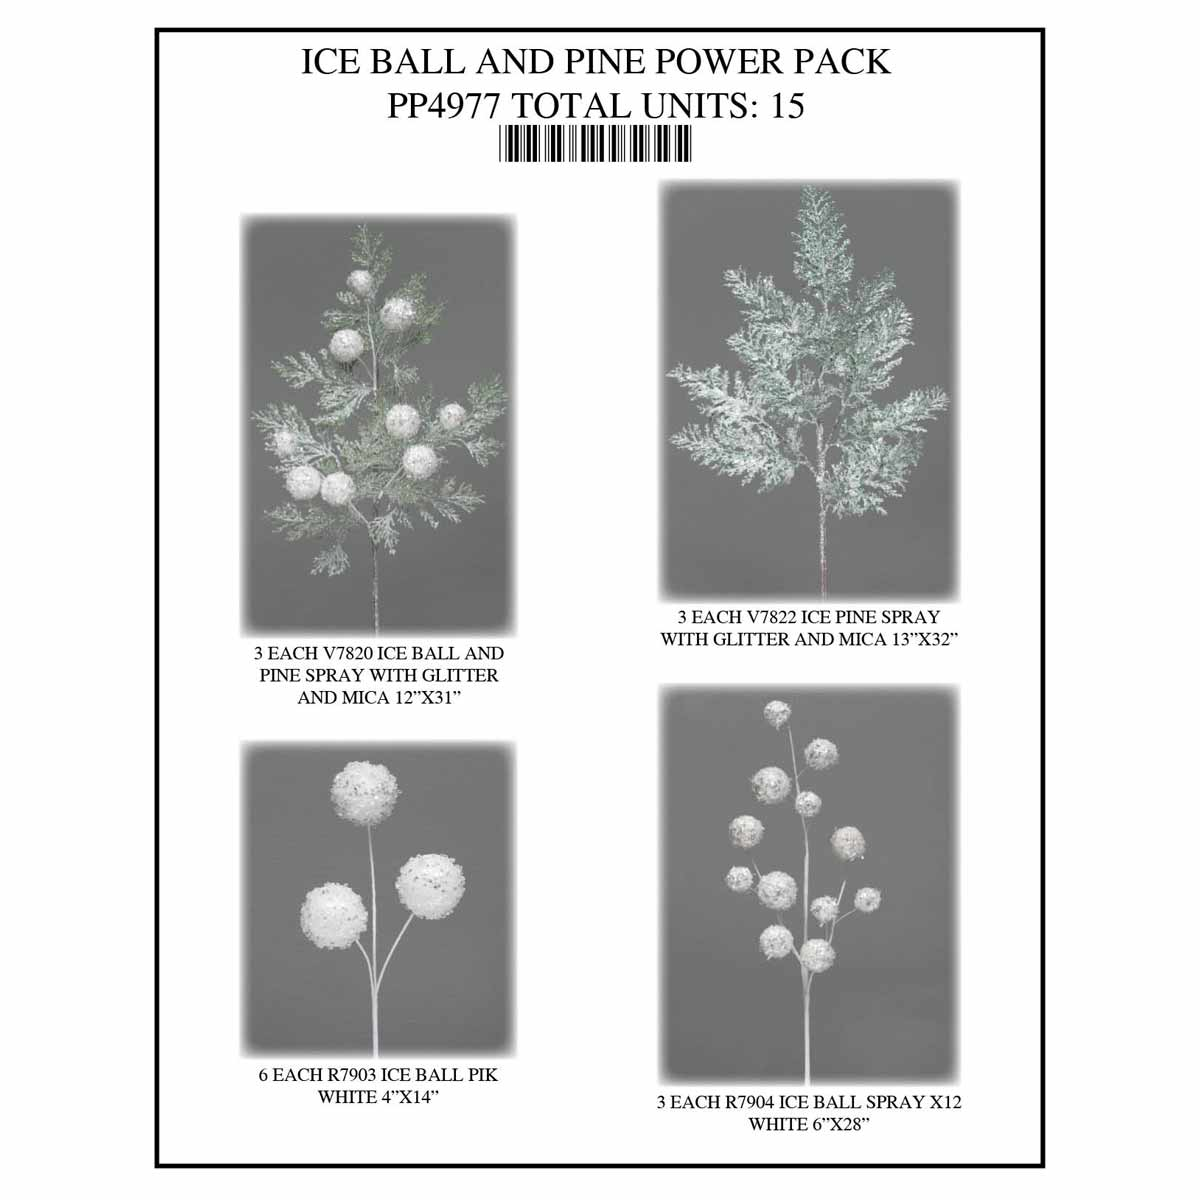 ICE BALL PINE Power Pack 15 Units